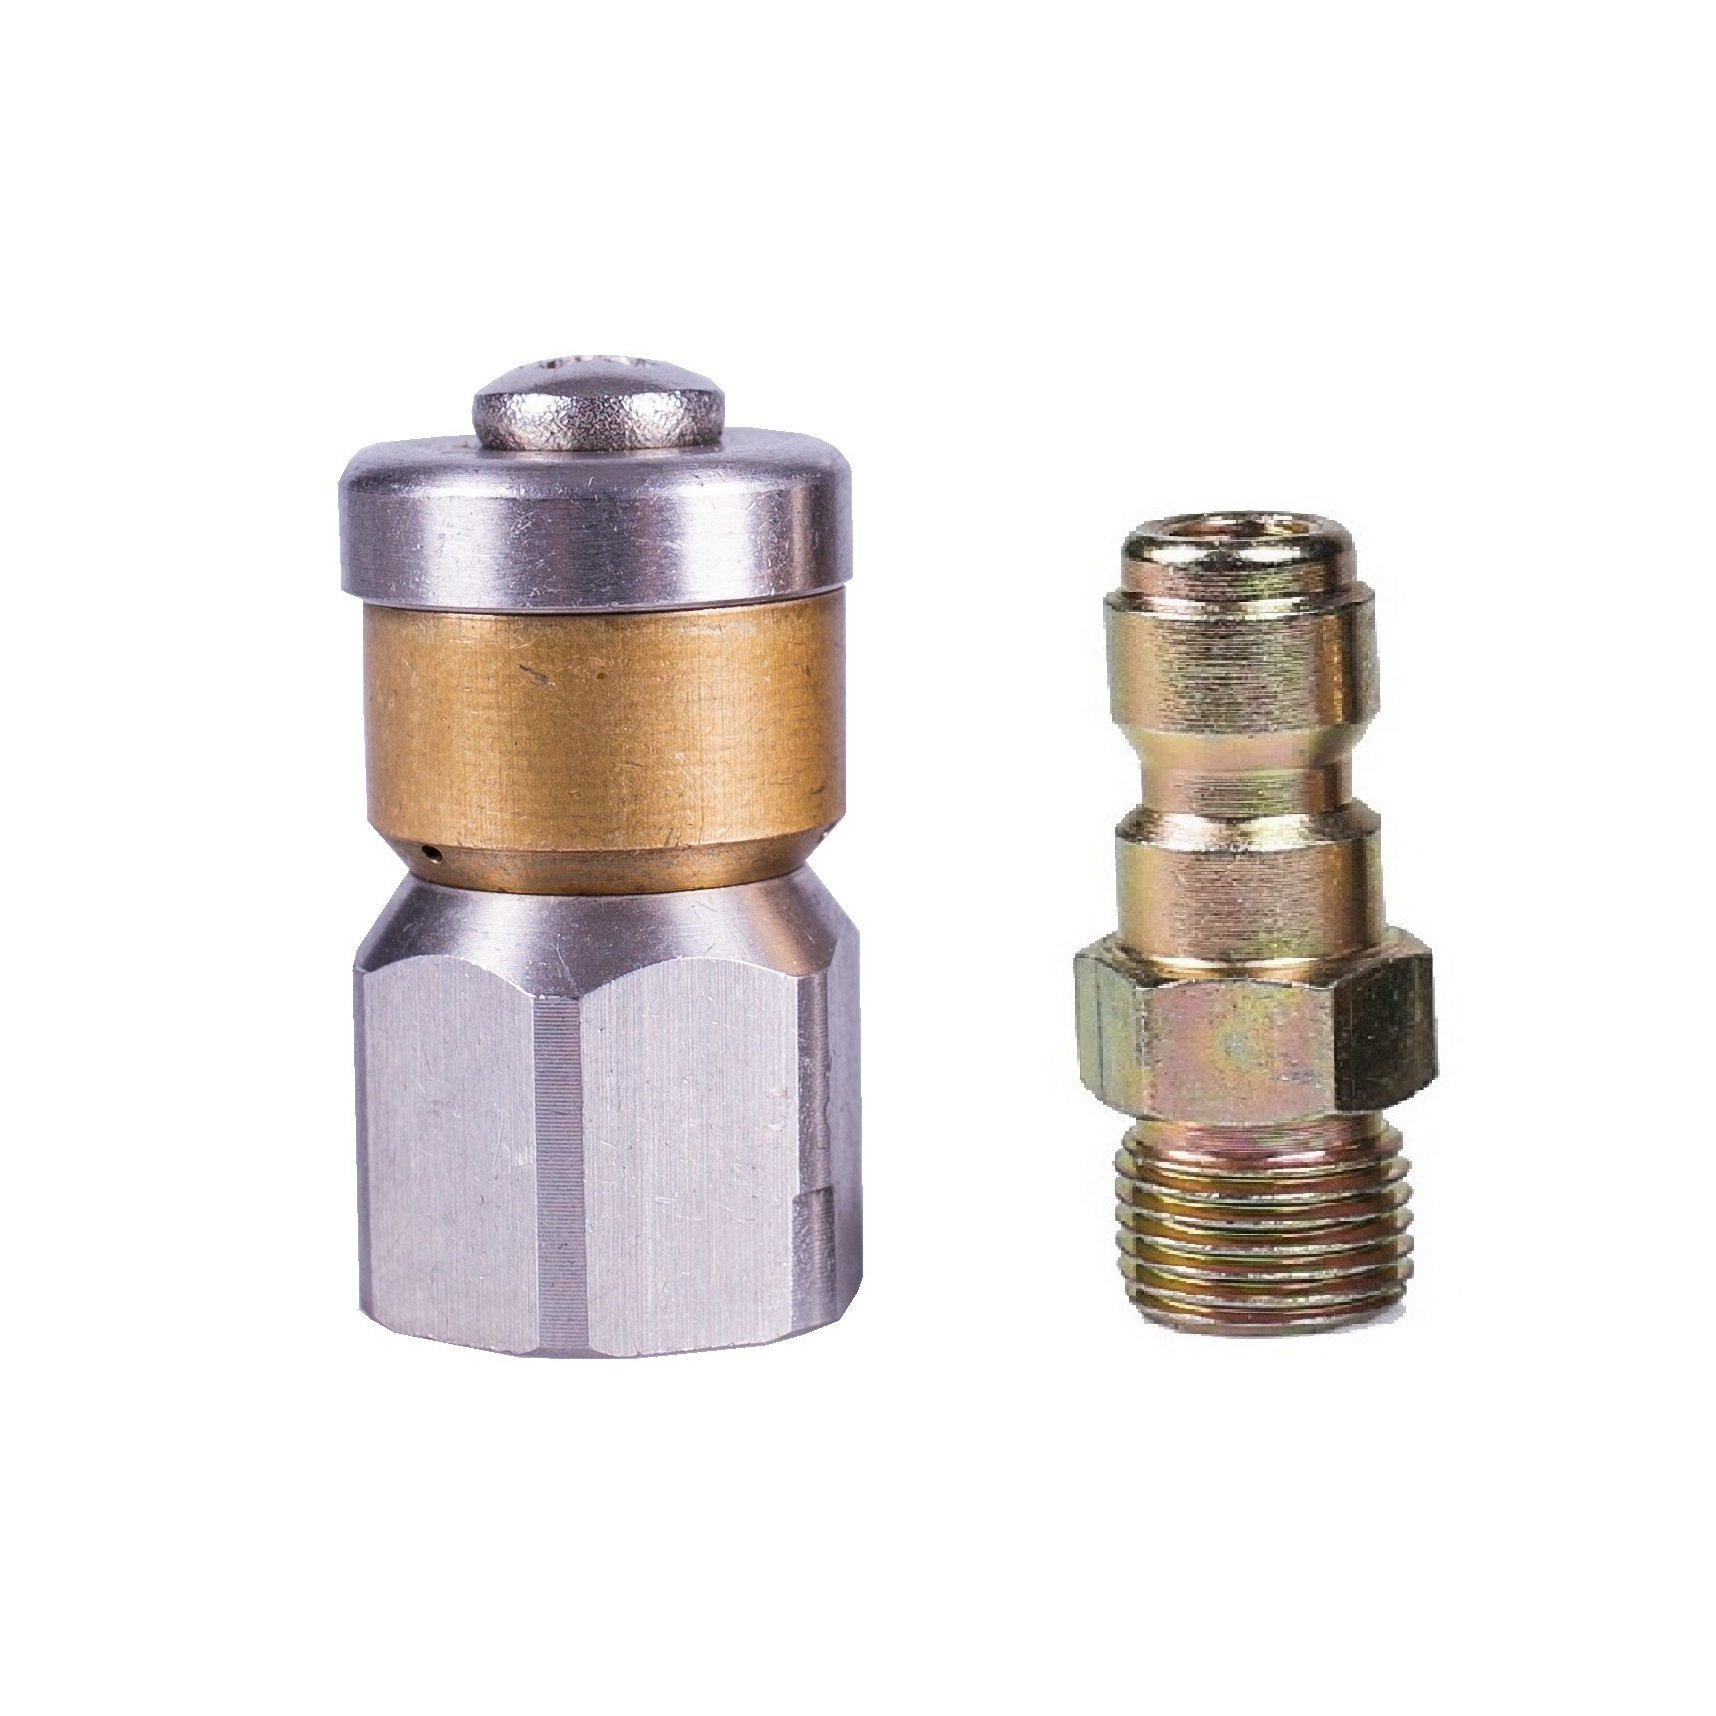 Tools Pro Sewer Jetting Rotating Nozzle For High Pressure Washer 4000 PSI Drain Clean Water, NPT 1/4in Female and 1/4in Quick Plug Two Patterns